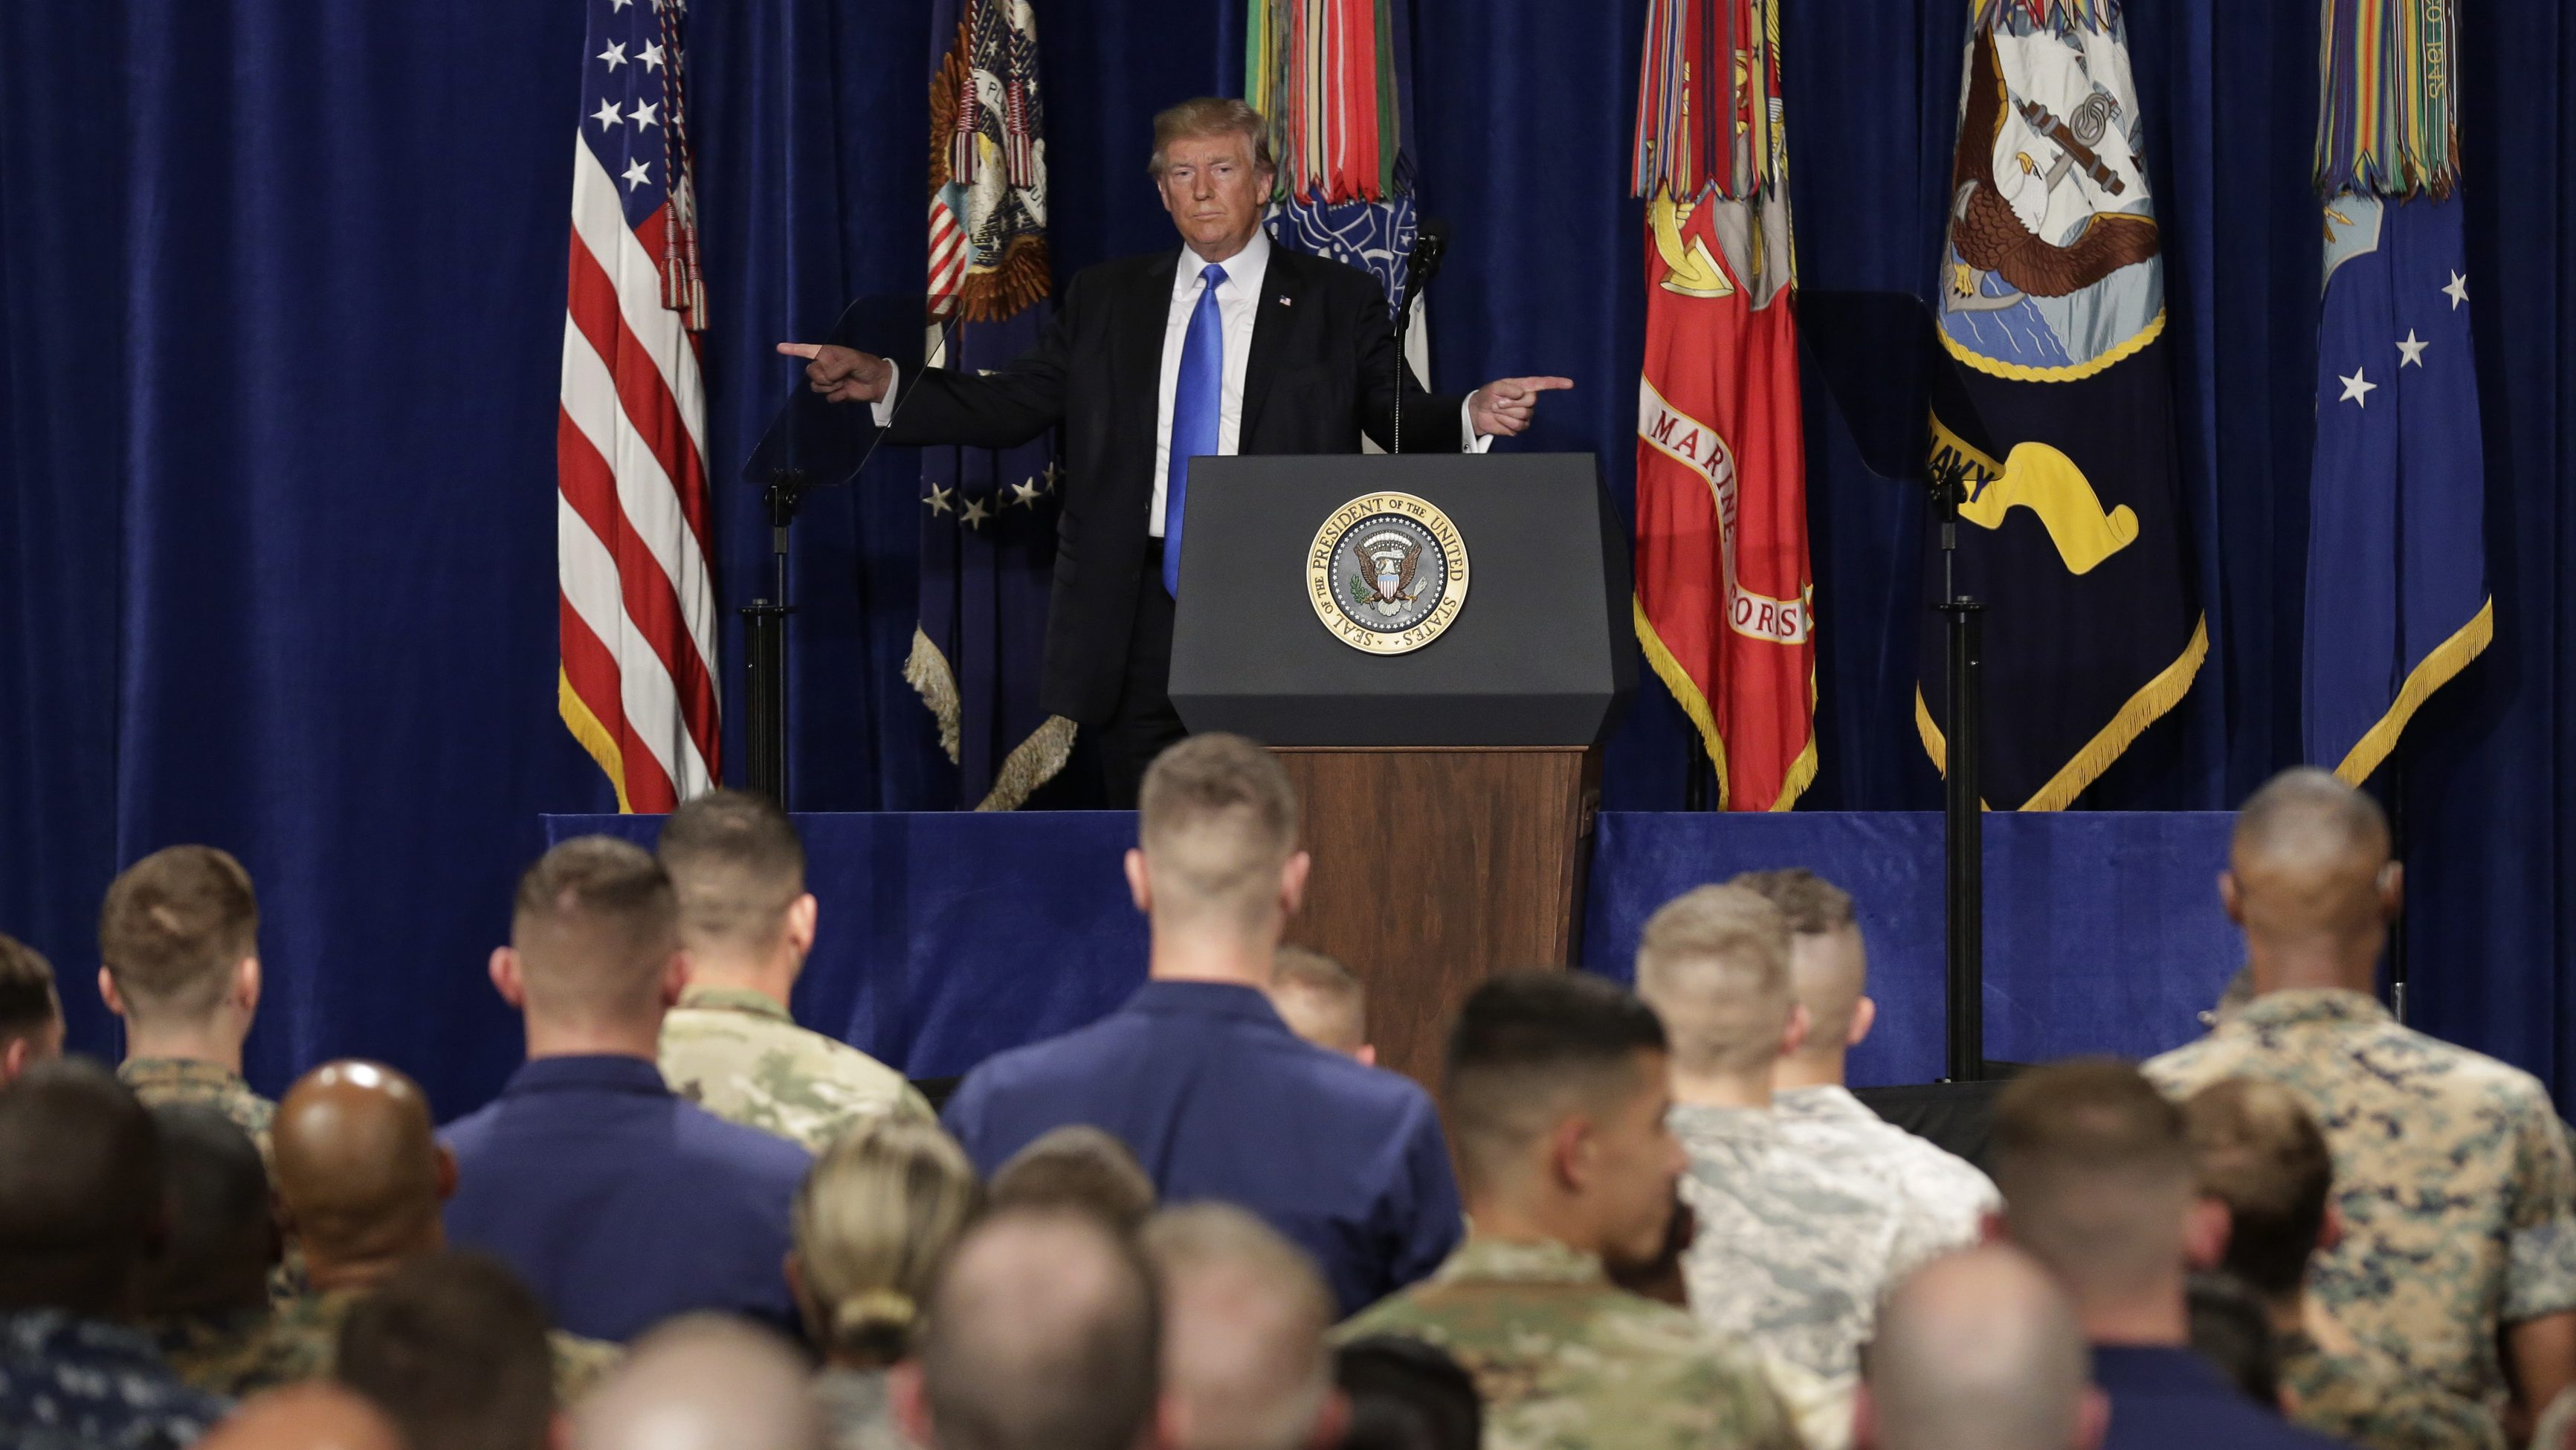 U.S. President Donald Trump gestures as he departs after announcing his strategy for the war in Afghanistan during an address to the nation from Fort Myer, Virginia, U.S., August 21, 2017.